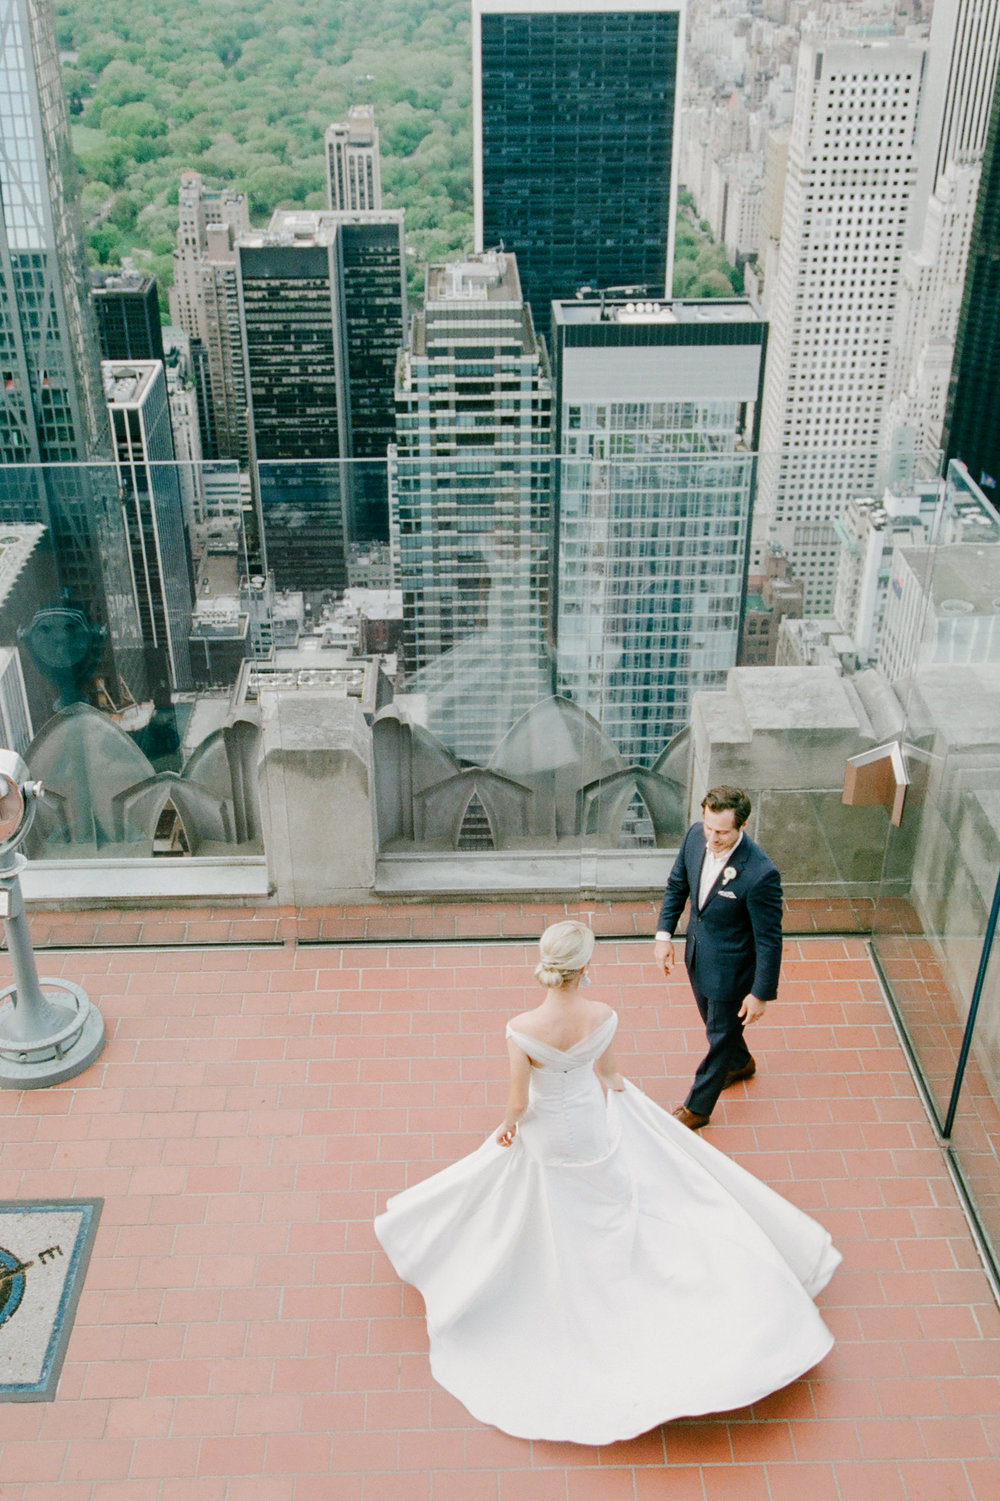 Intimate-NYC_wedding_ by Tanya Isaeva-175.jpg